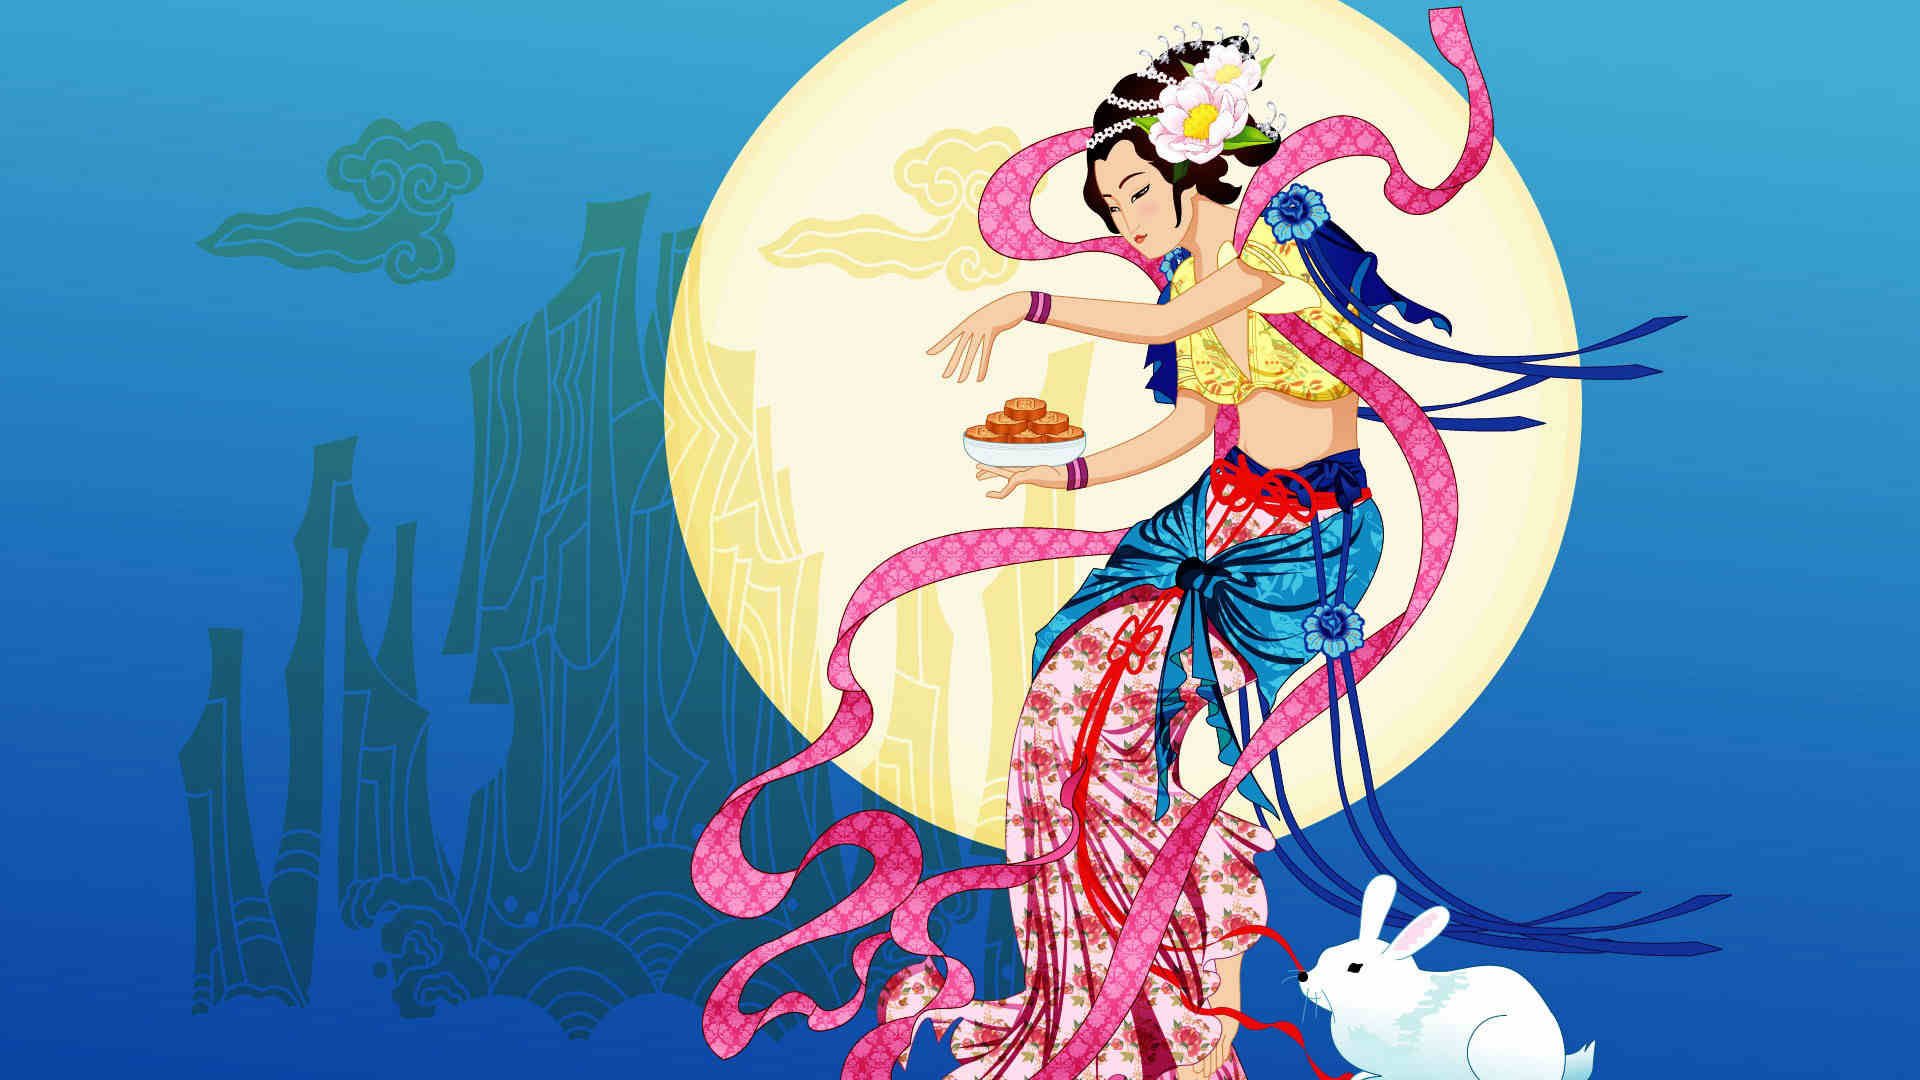 The goddess, rabbit and other lunar tales: the folklore surrounding China's moon exploration